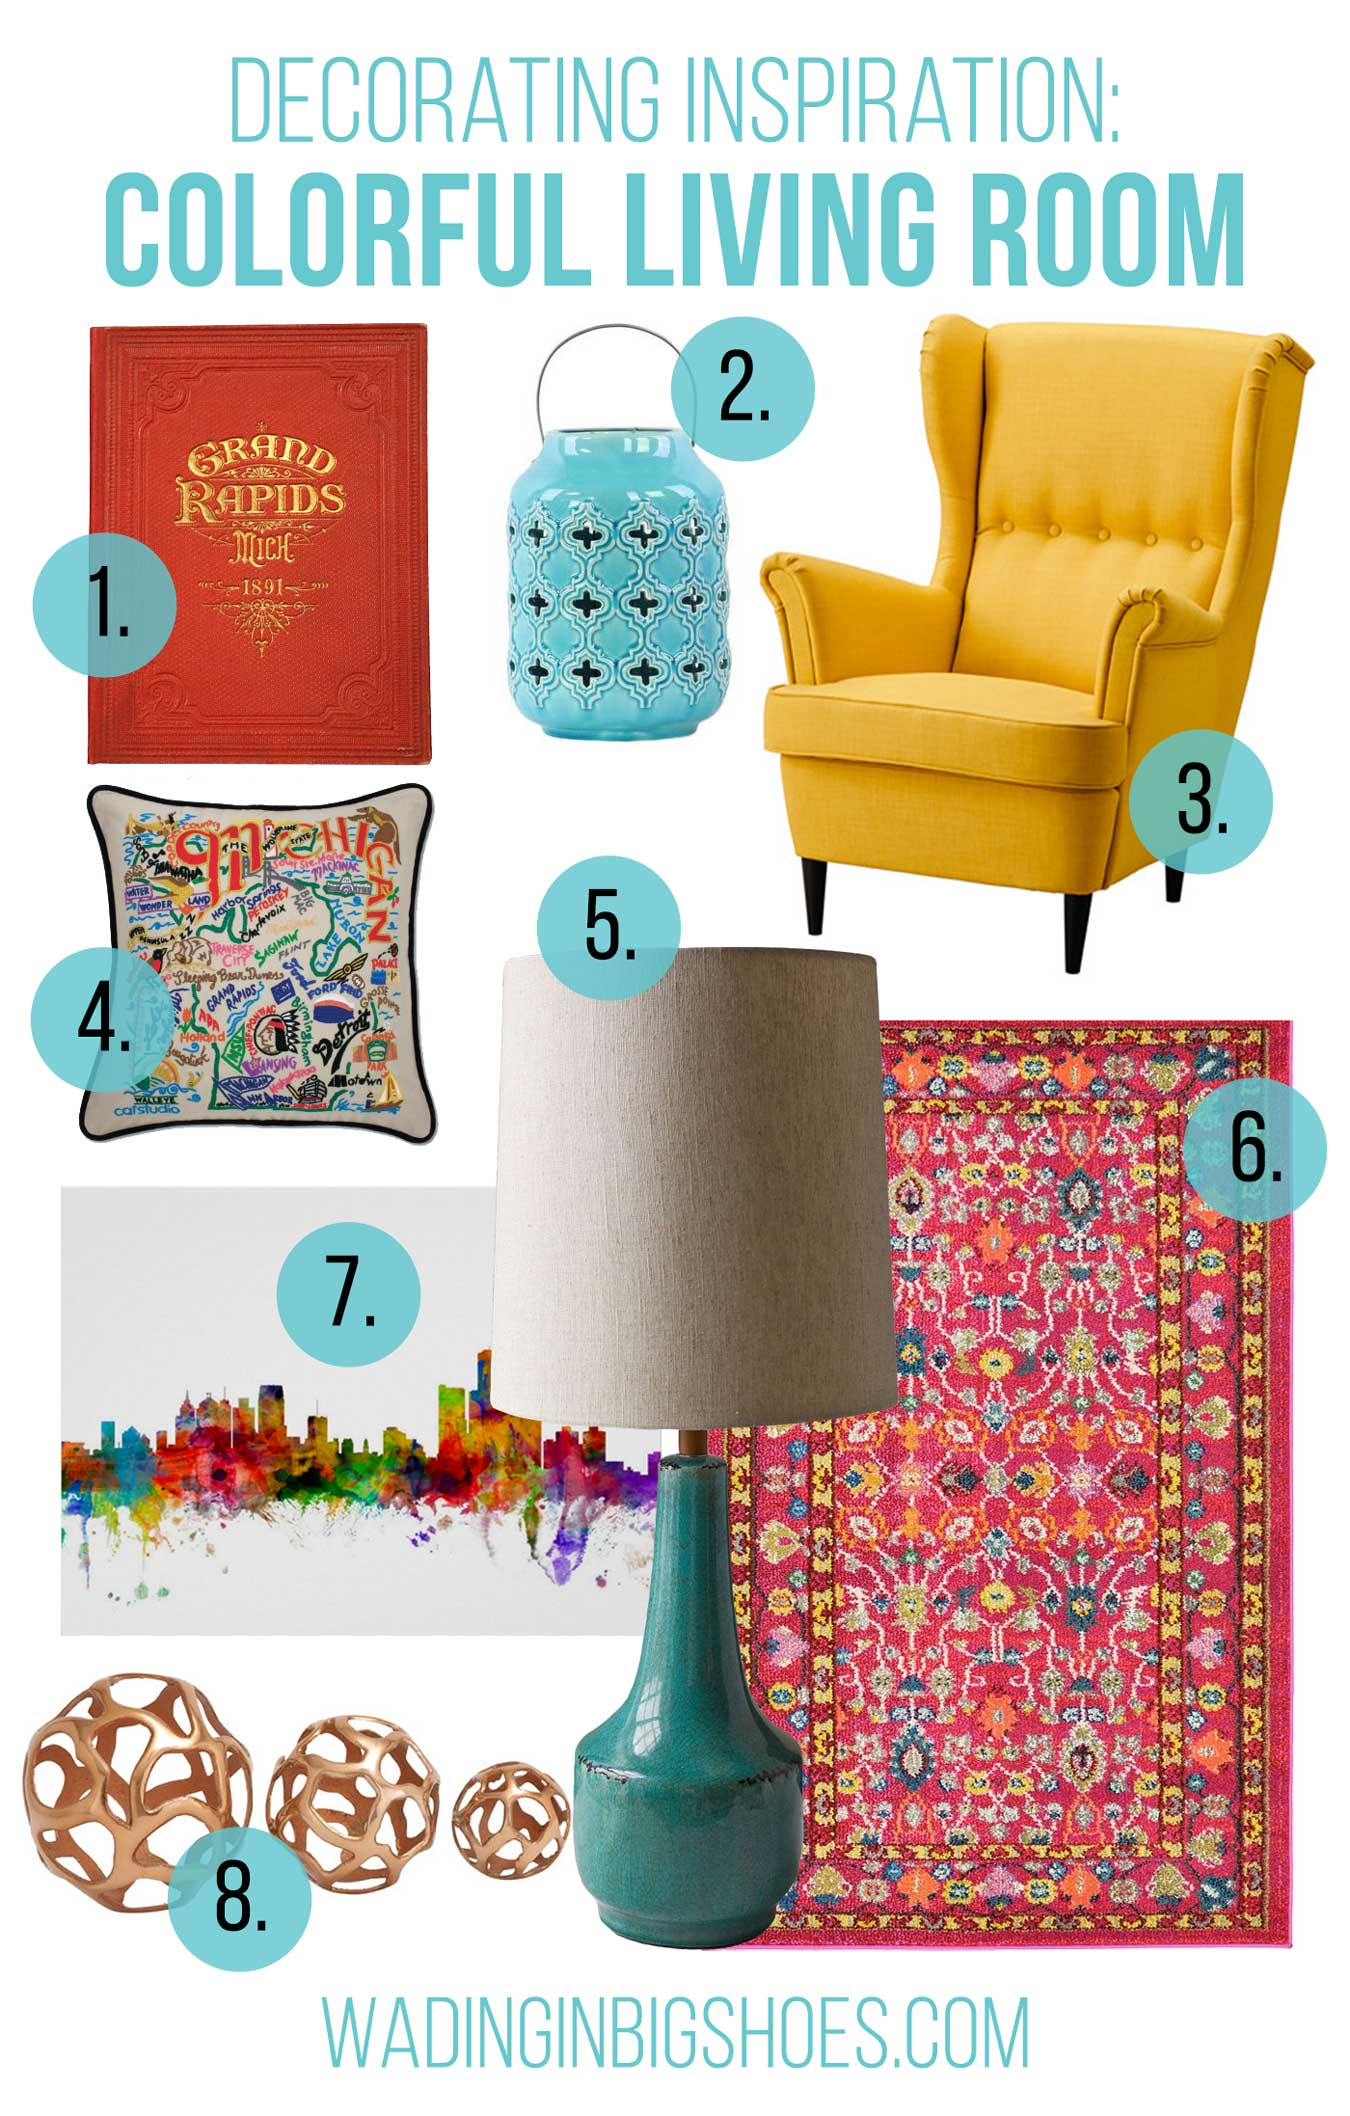 Decorating Inspiration: Colorful Living Room Ideas | Wading in Big Shoes